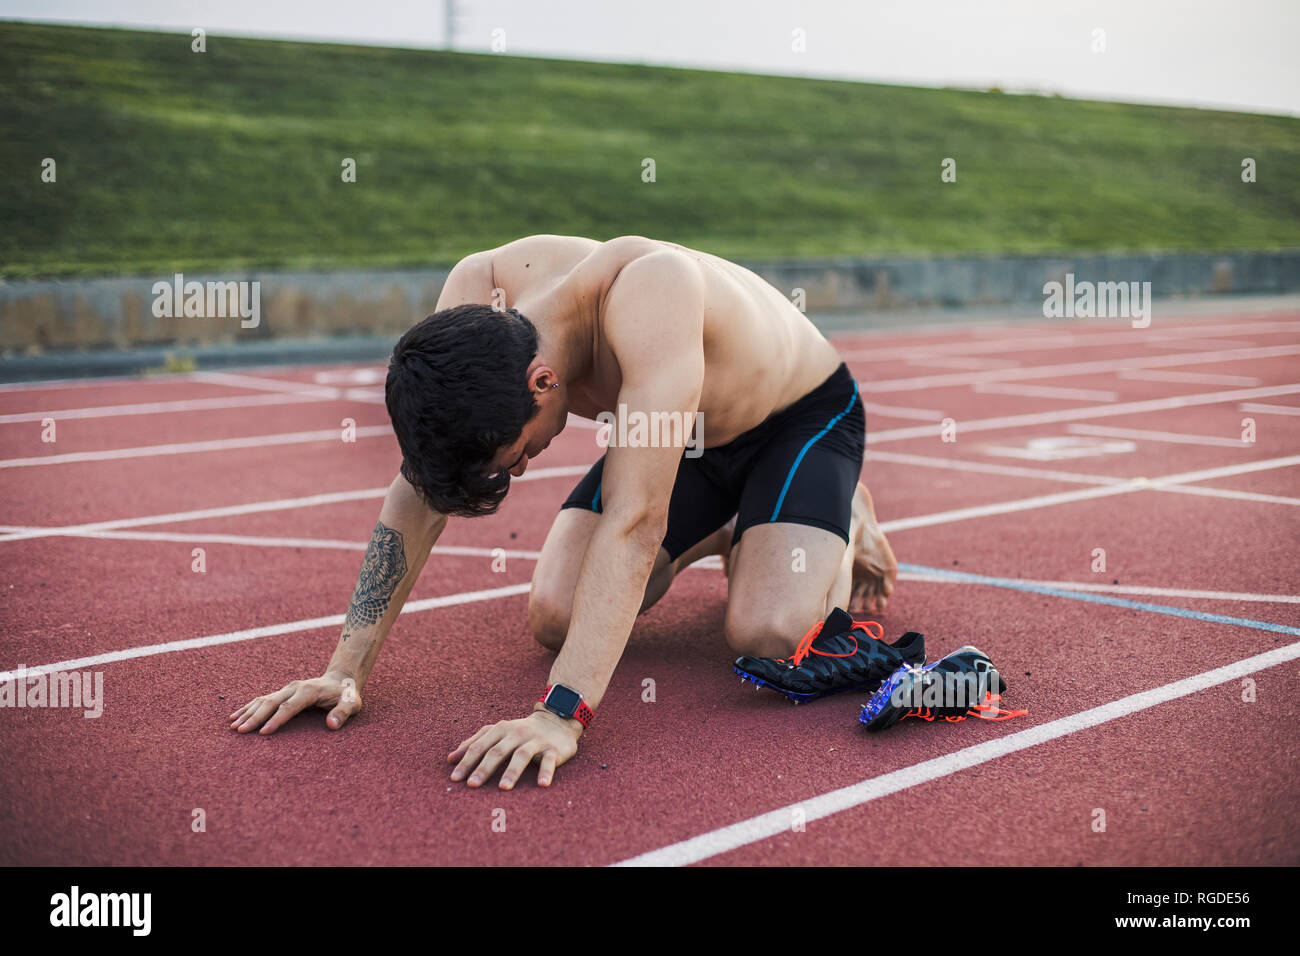 Athlete kneeling on a tartan track after finishing a race - Stock Image